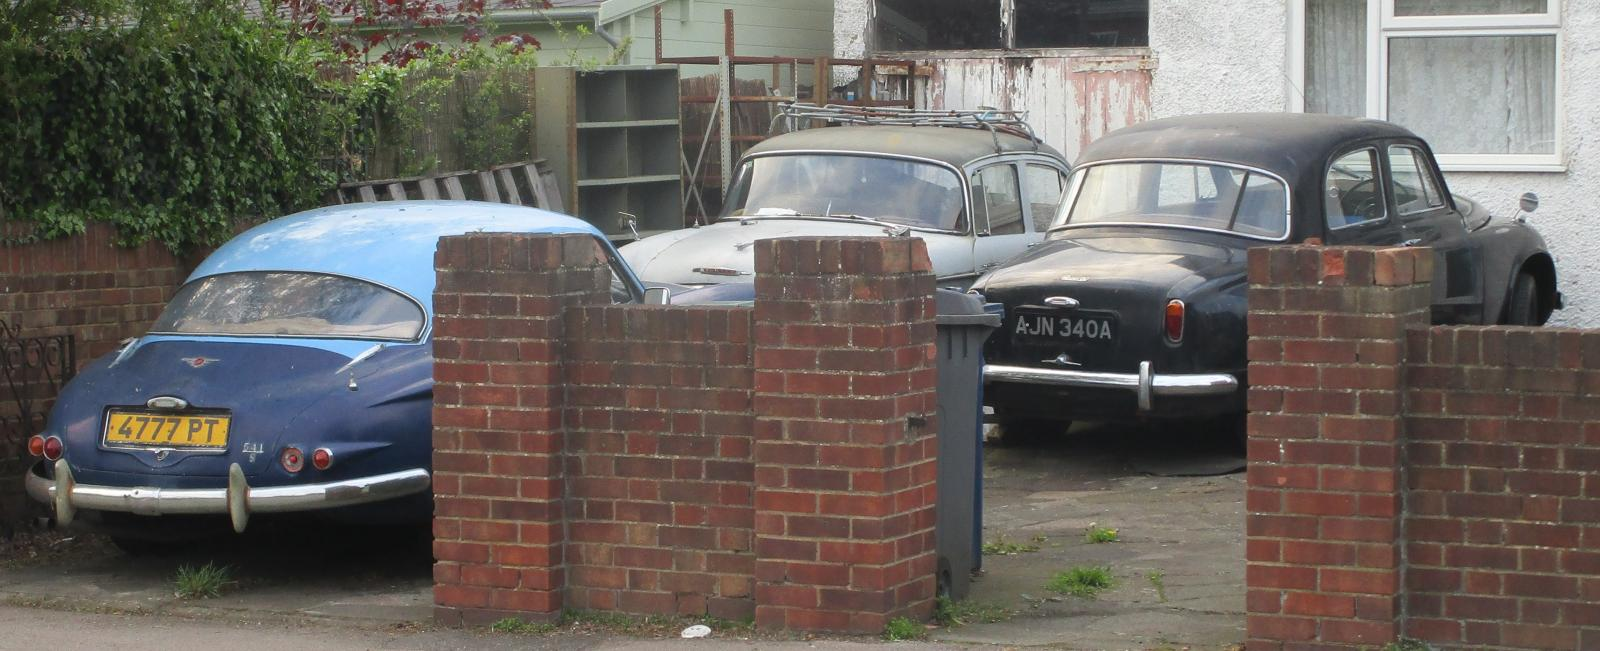 1961 Jensen 541S and 1956 Rover 90.JPG